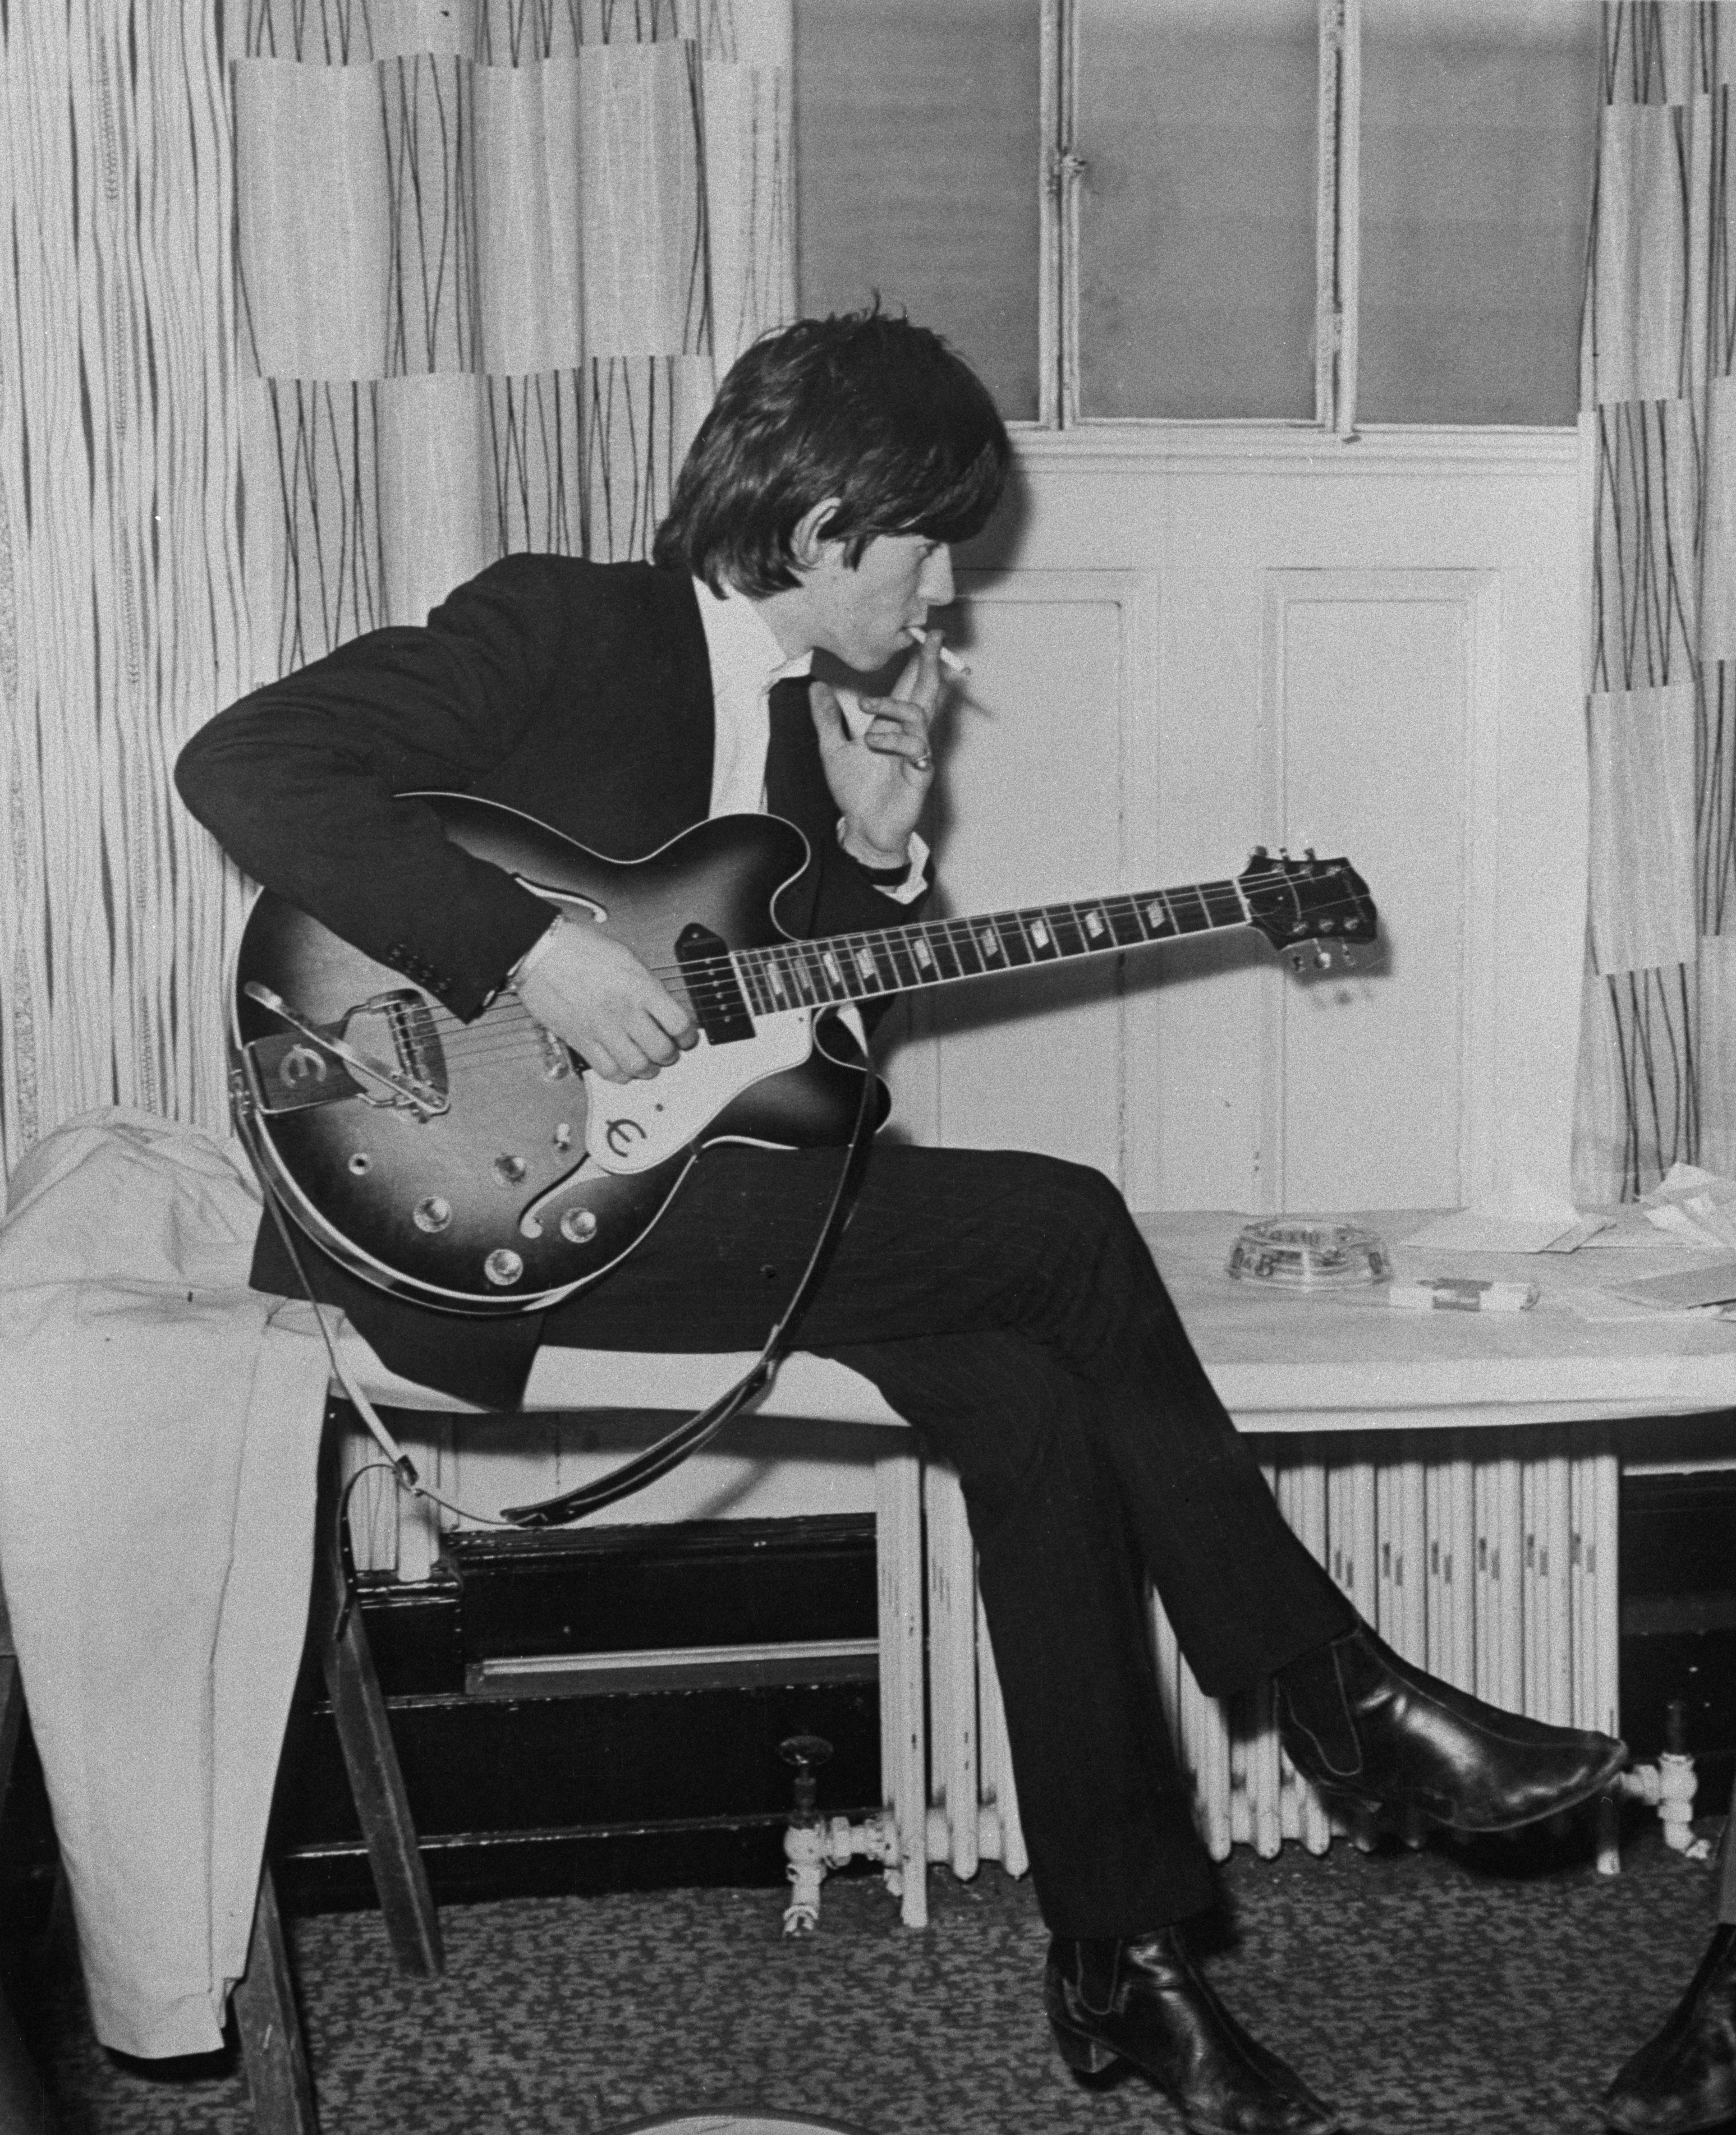 English guitarist Keith Richards of the Rolling Stones, circa 1965.   (Photo by Keystone Features/Hulton Archive/Getty Images)